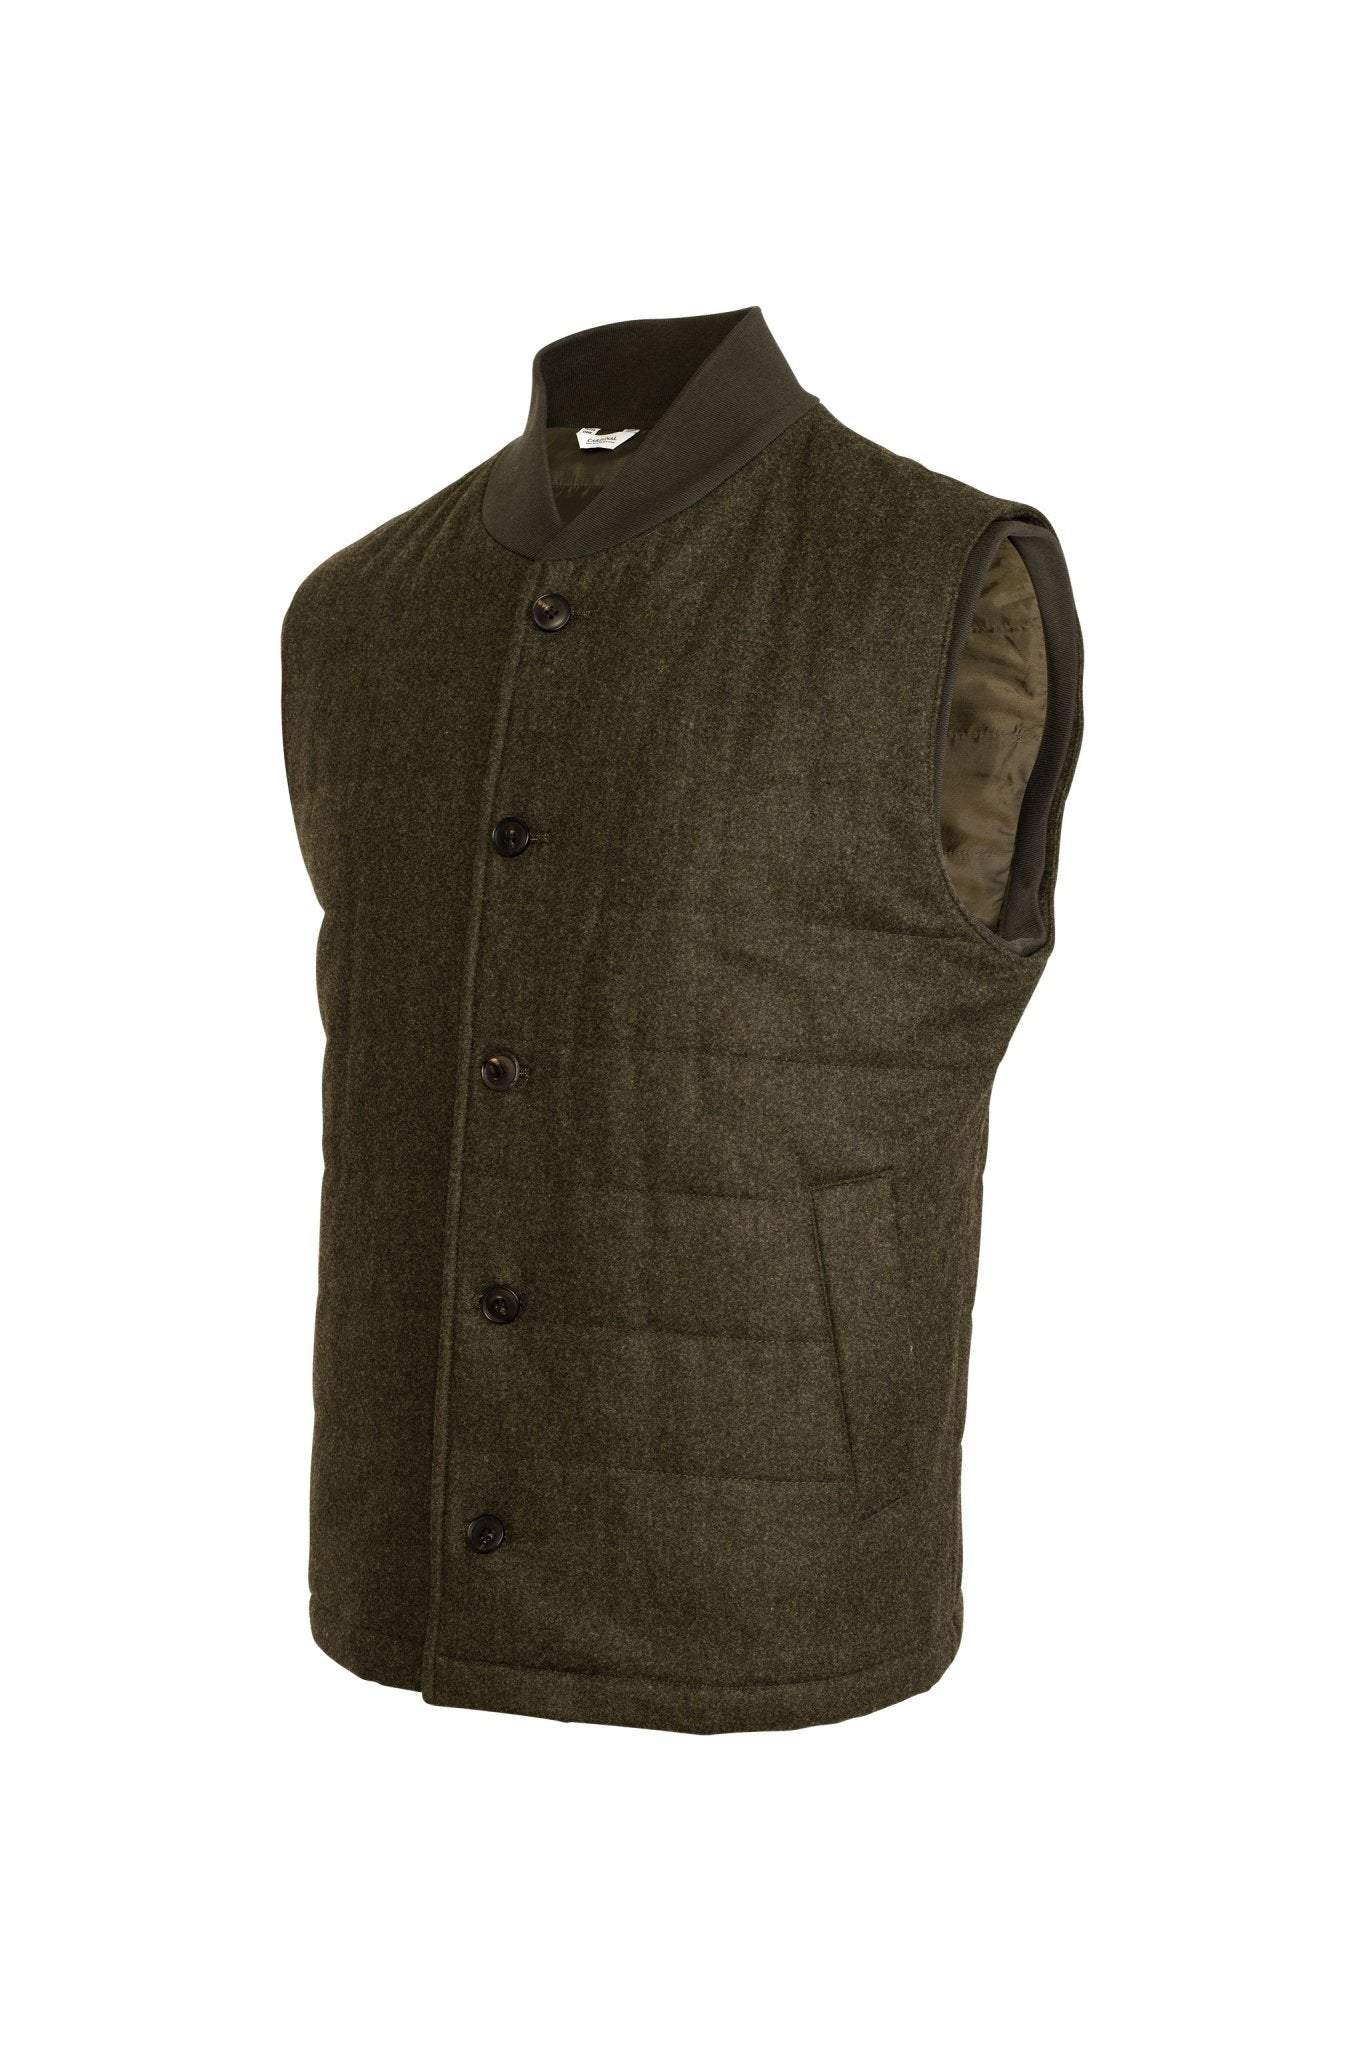 Olive Ronan Wool Flannel Quilted Vest - Cardinal of Canada-US